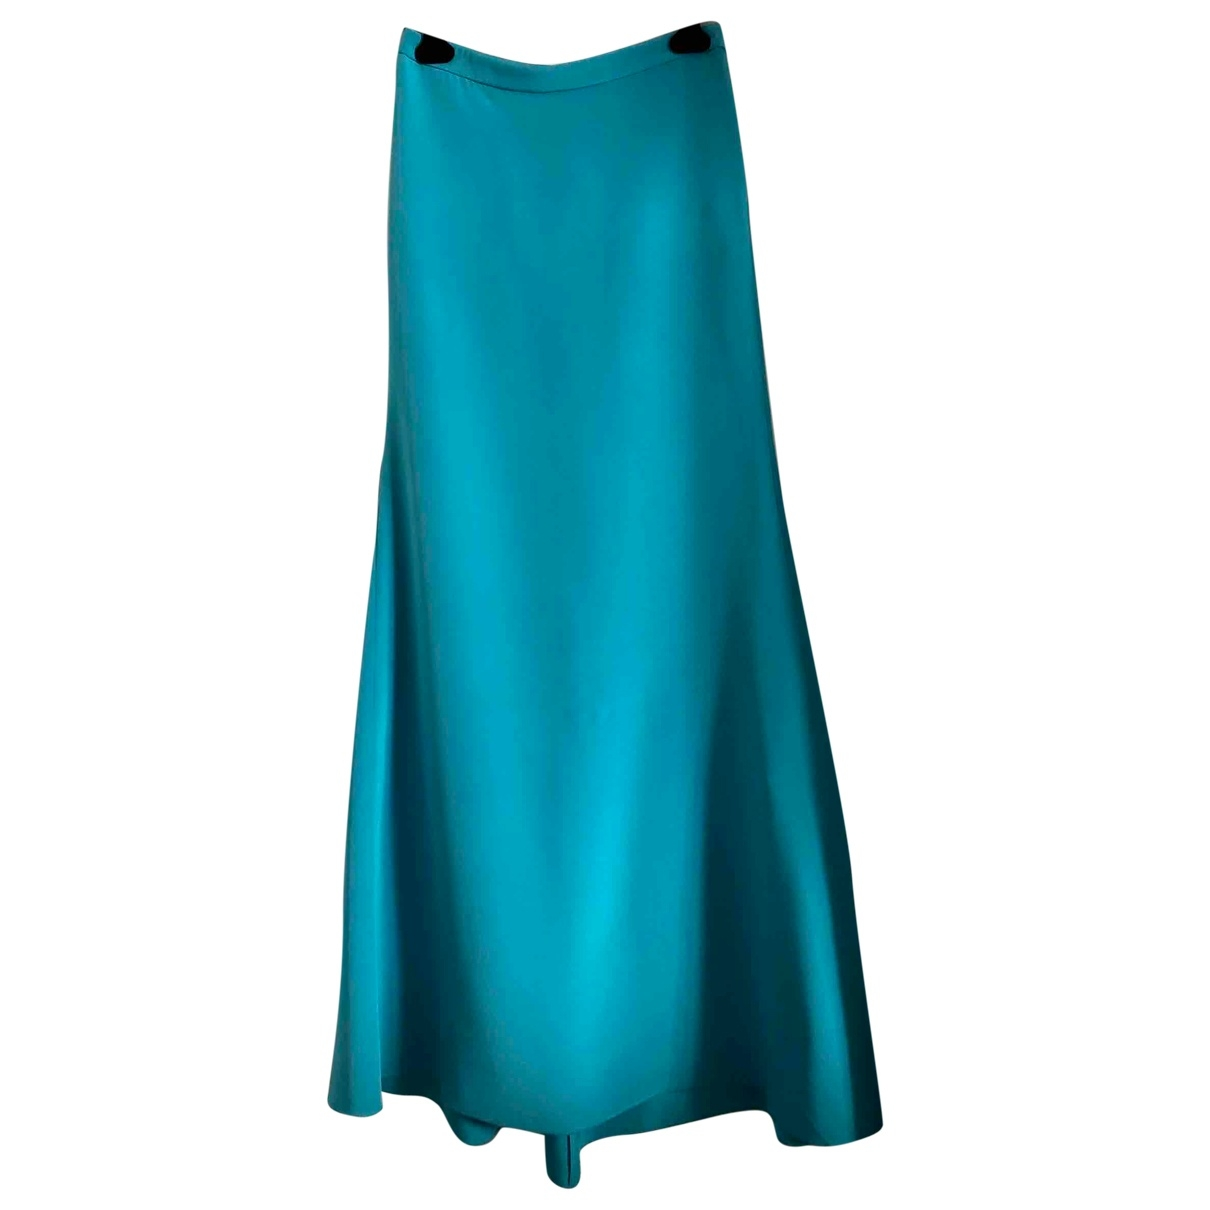 Emilio Pucci \N Turquoise Silk skirt for Women 40 IT